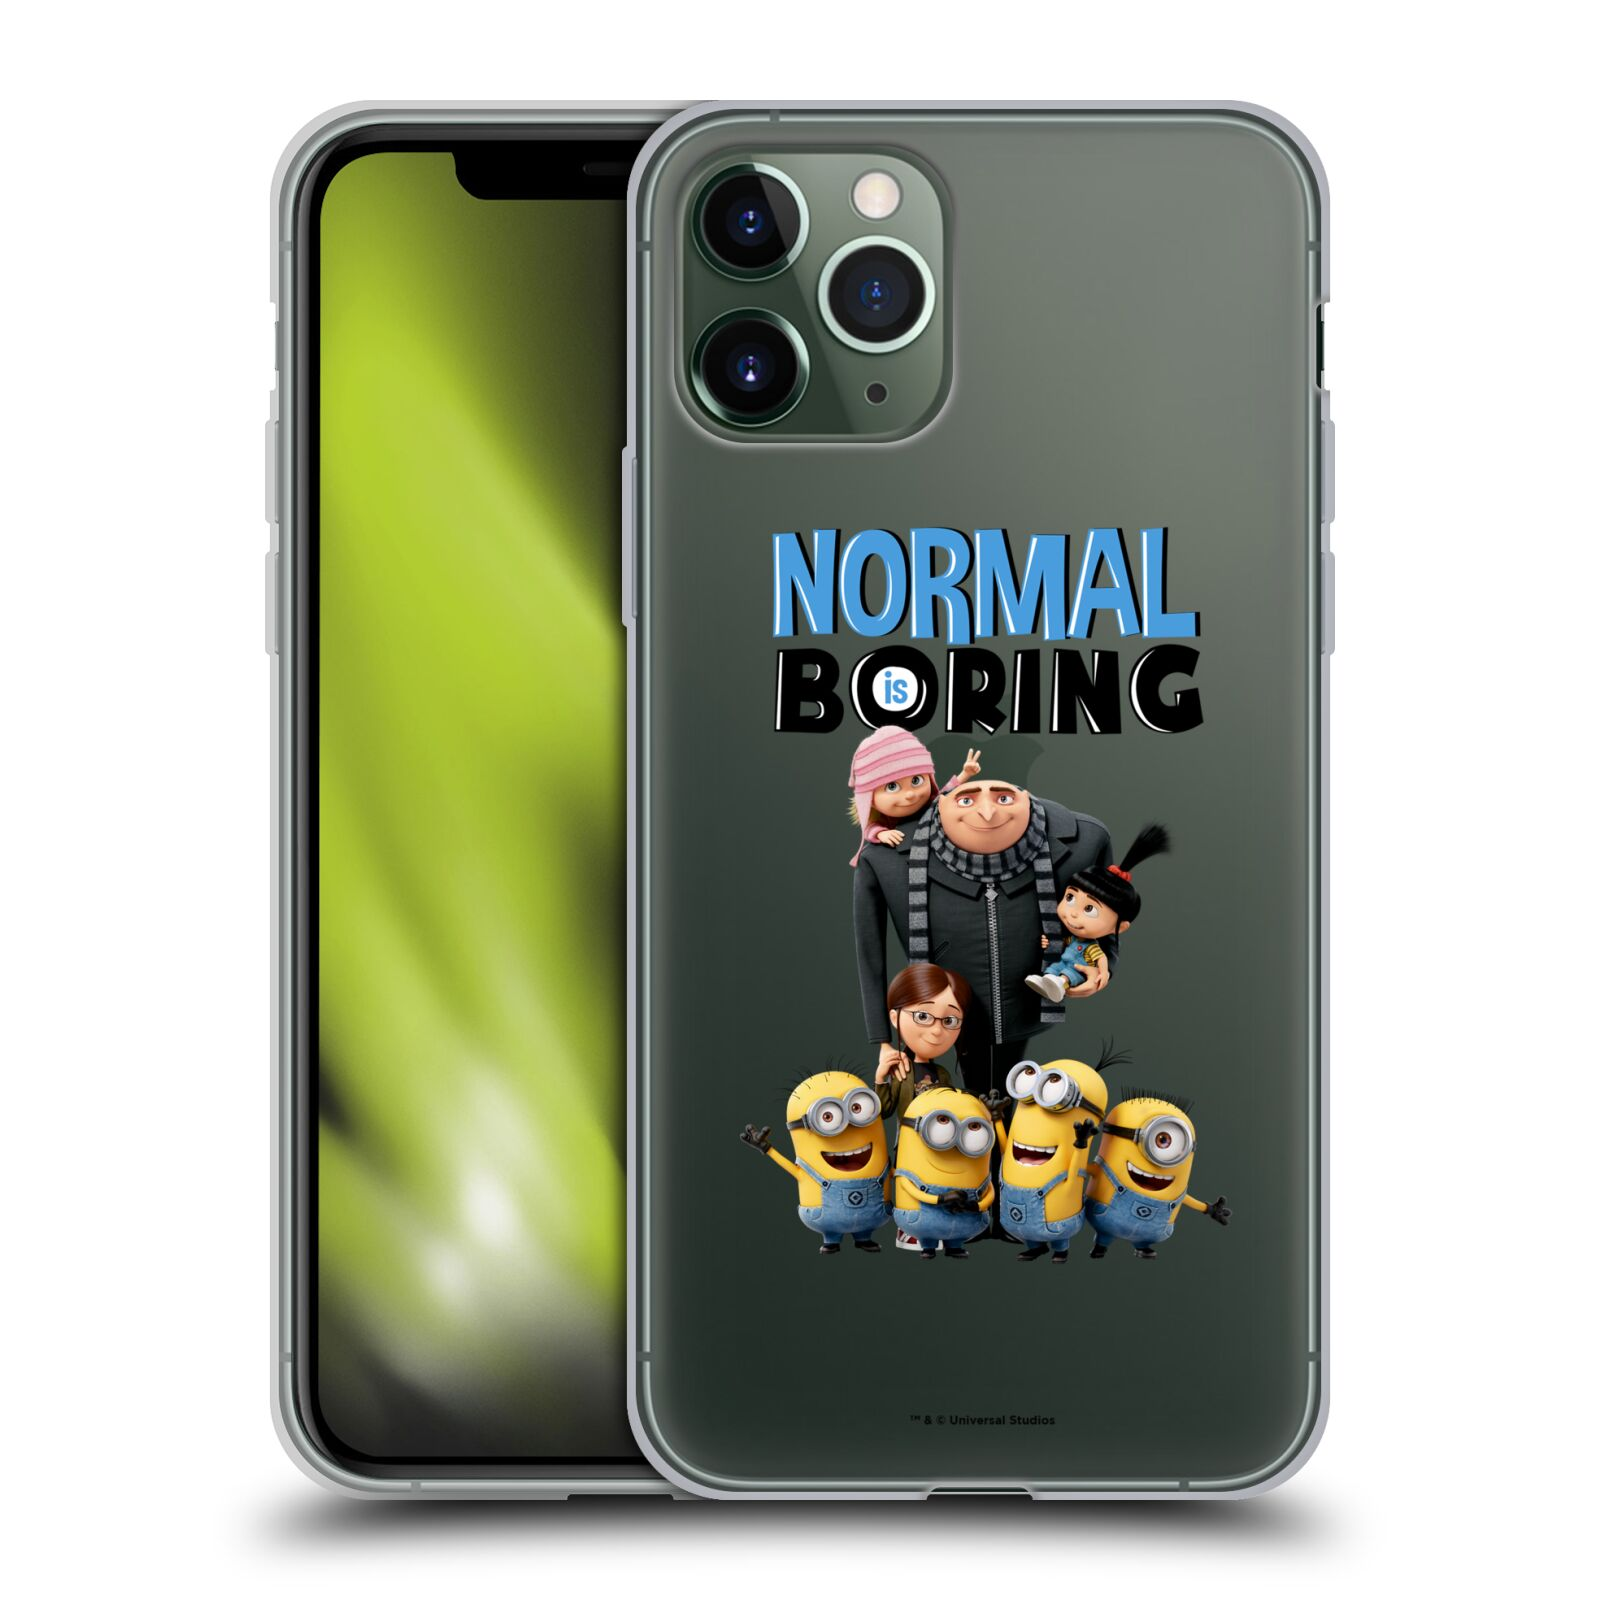 silikonový obaly iphone 6s plus | Silikonové pouzdro na mobil Apple iPhone 11 Pro - Head Case - Normal is boring z filmu Já, padouch - Despicable Me